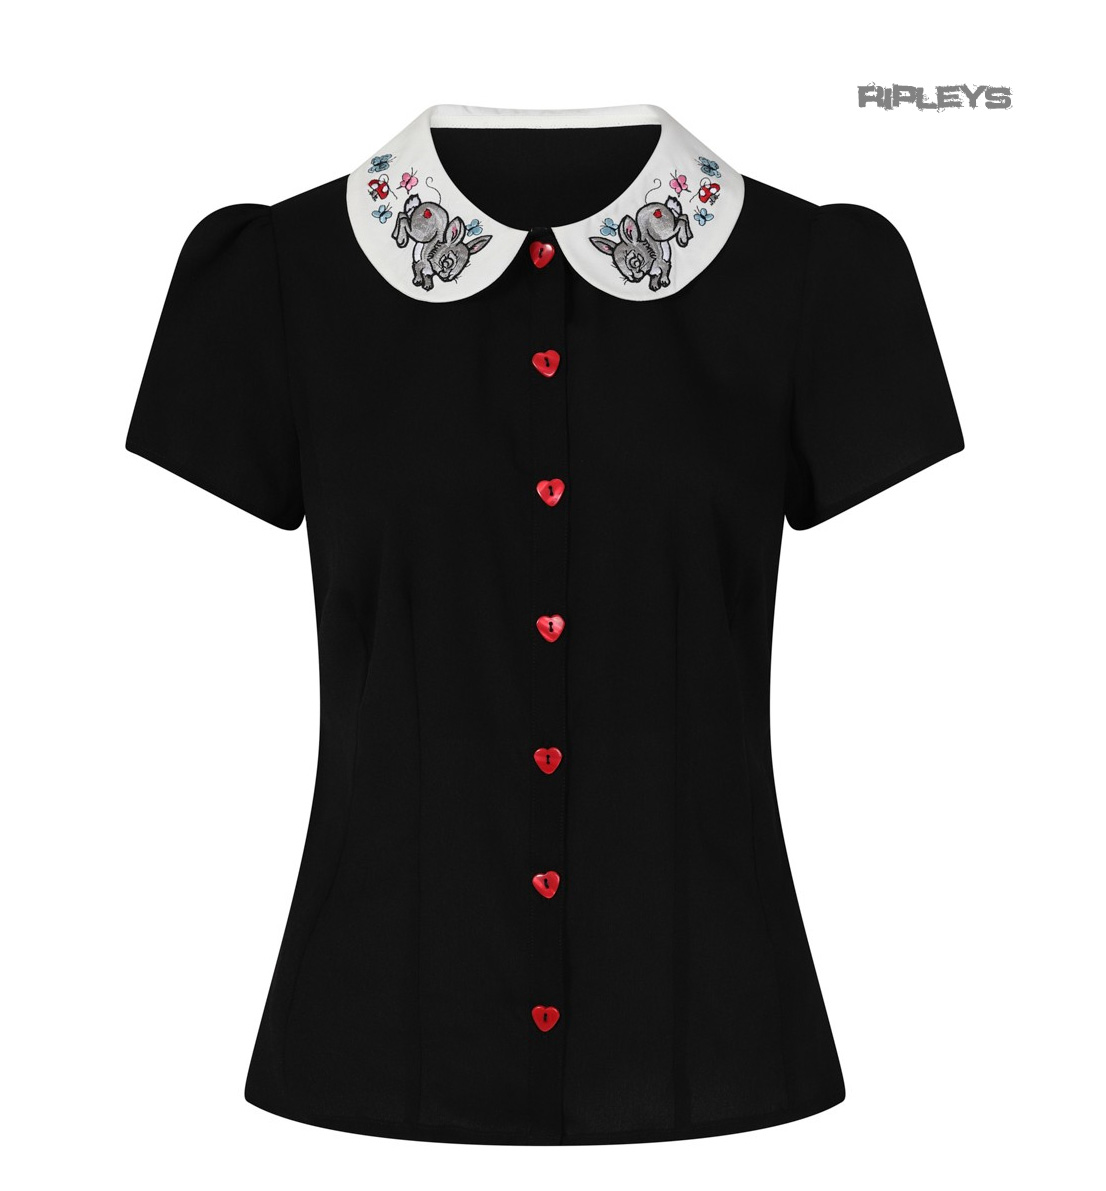 Hell-Bunny-Shirt-Top-Black-Blouse-THUMPER-Easter-Rabbit-Flowers-All-Sizes thumbnail 8